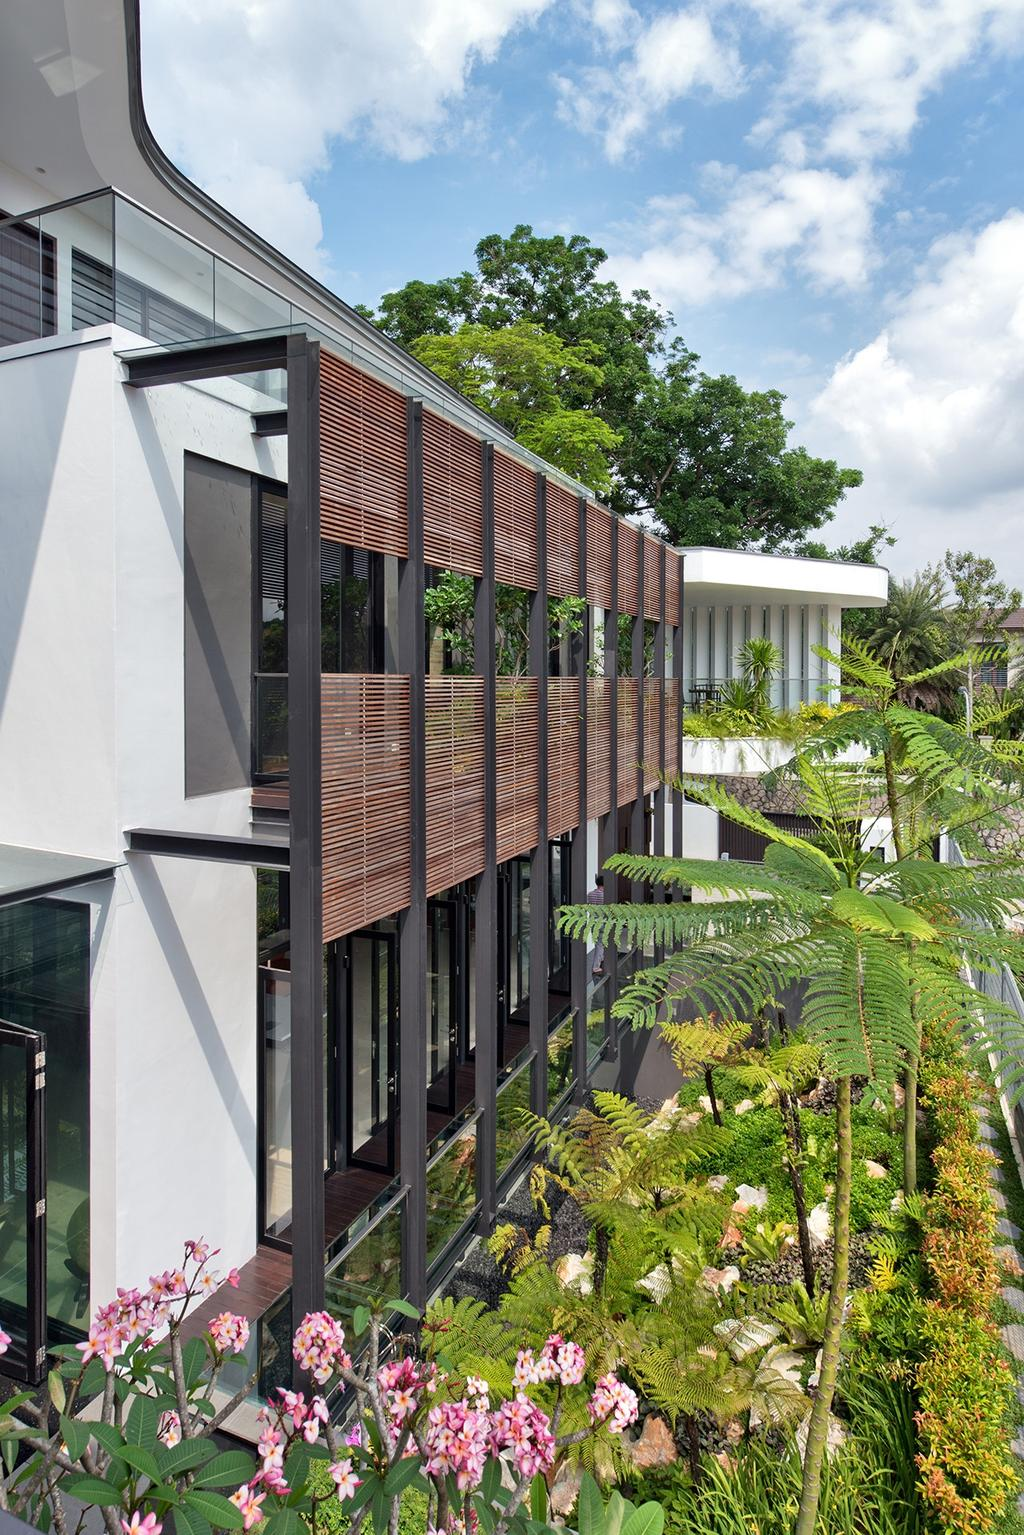 Contemporary, Landed, Garden, Toh Heights, Architect, Kite Studio Architecture, Exterior, Facade, Ventilation, Plants, Landscaping, Fern, Flora, Plant, Arecaceae, Palm Tree, Tree, Conifer, Yew